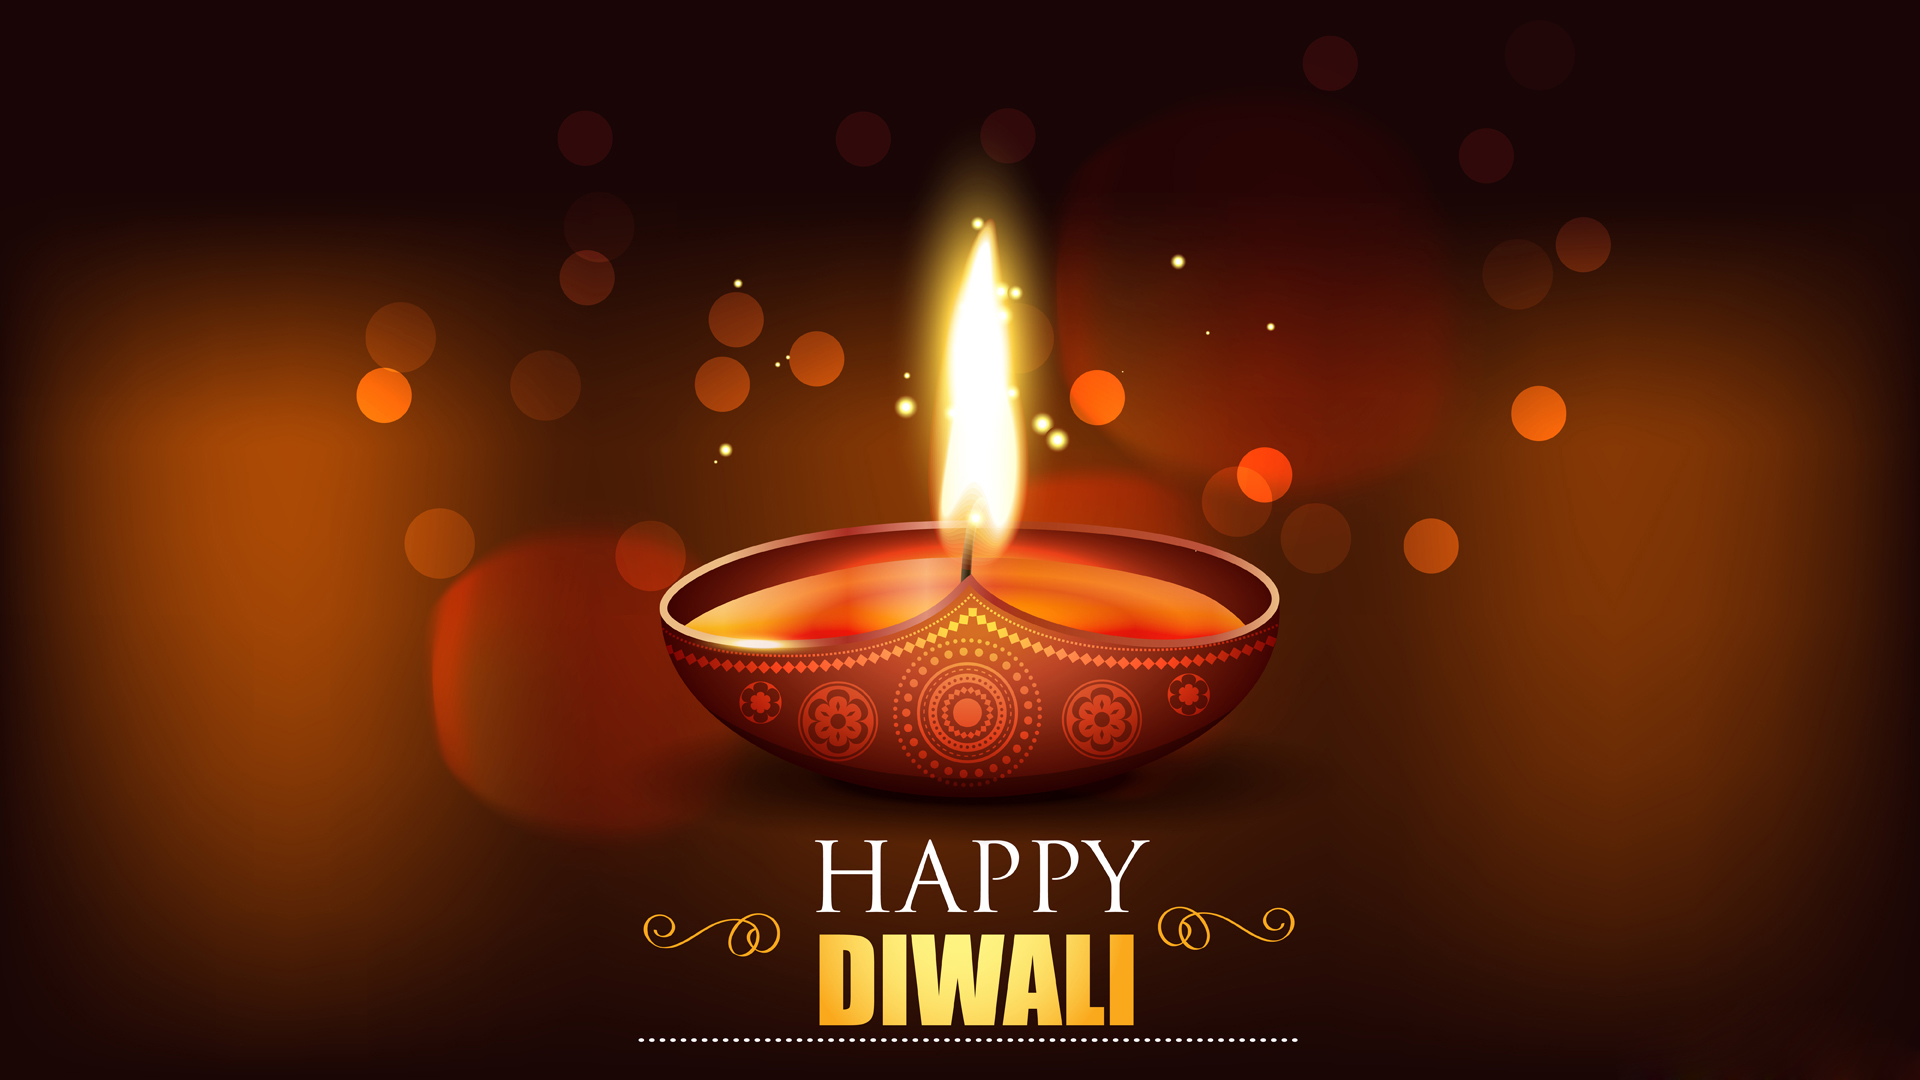 Top 100 Happy Diwali Deepavali 2018 Diya Hd Wallpapers Images